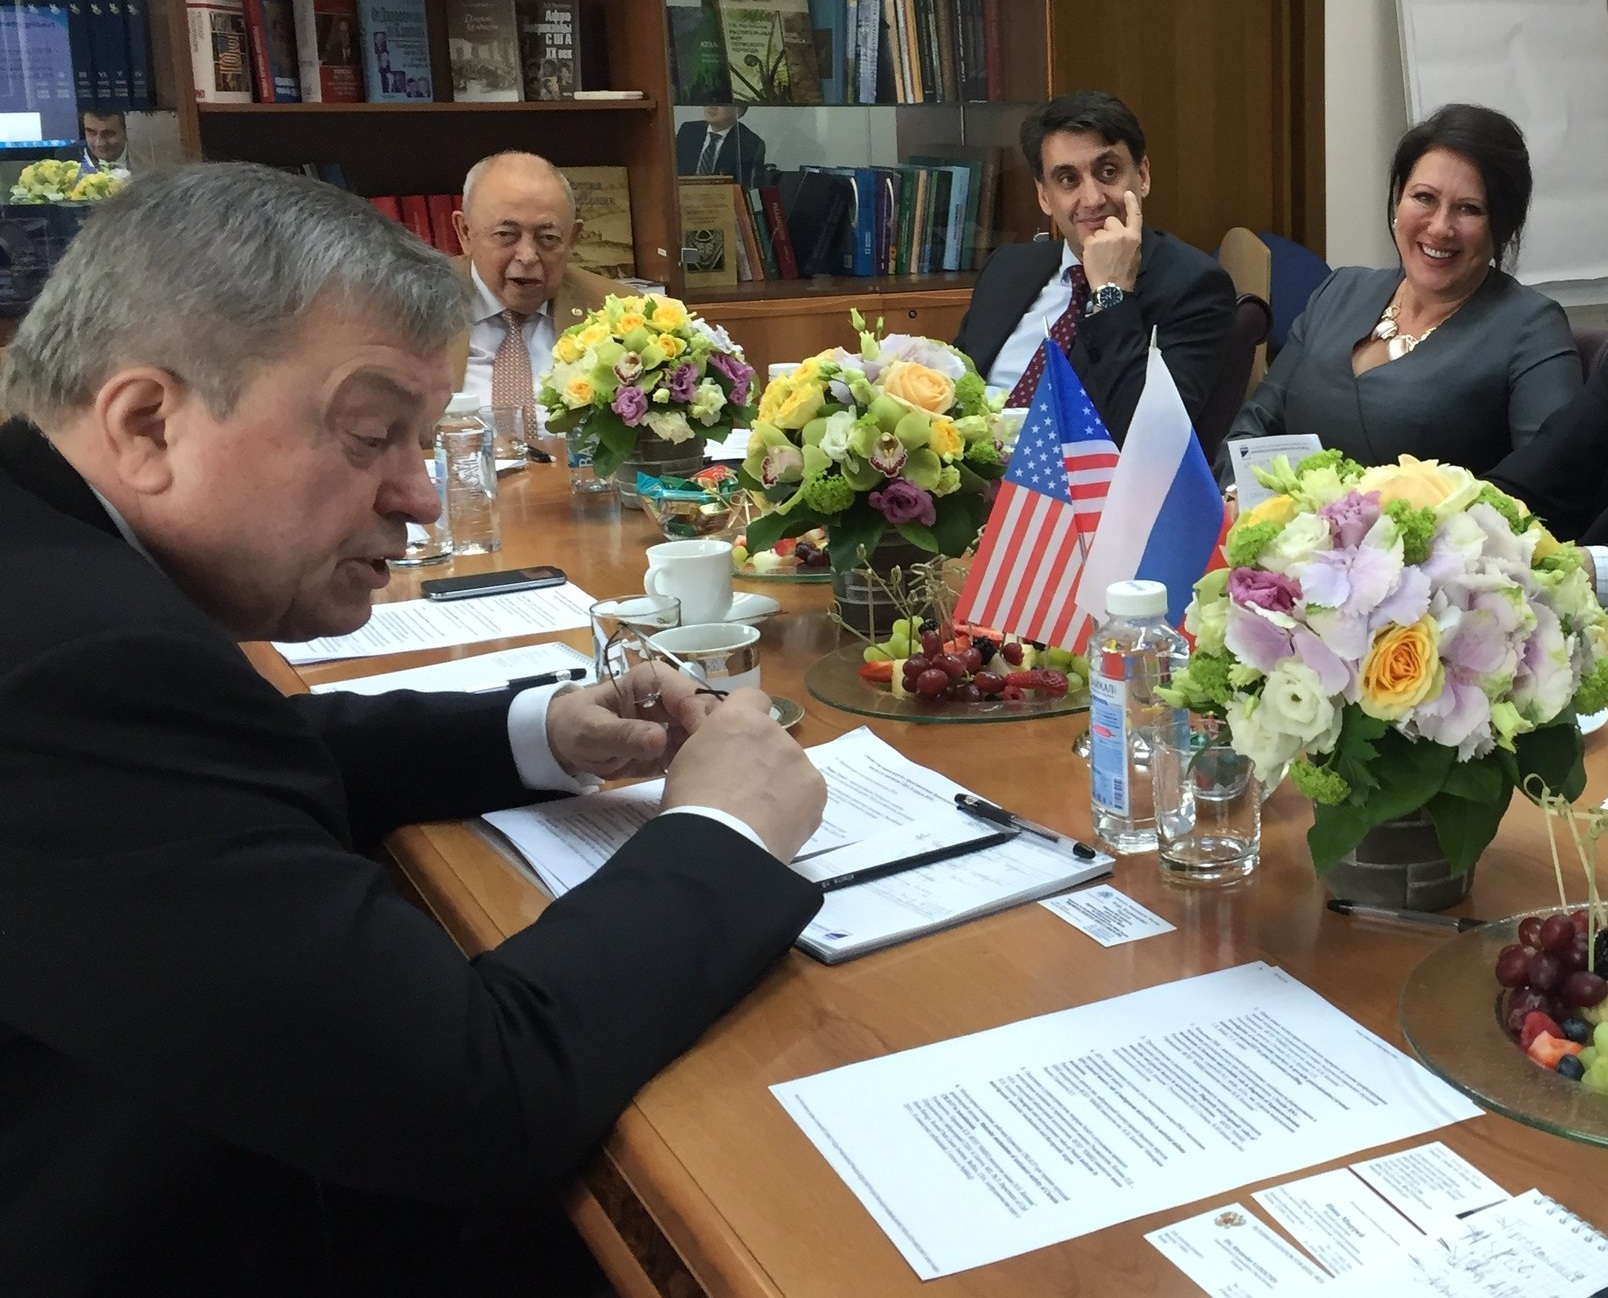 Joint Working Group Meeting to discuss U.S.-Russian scientific collaborations